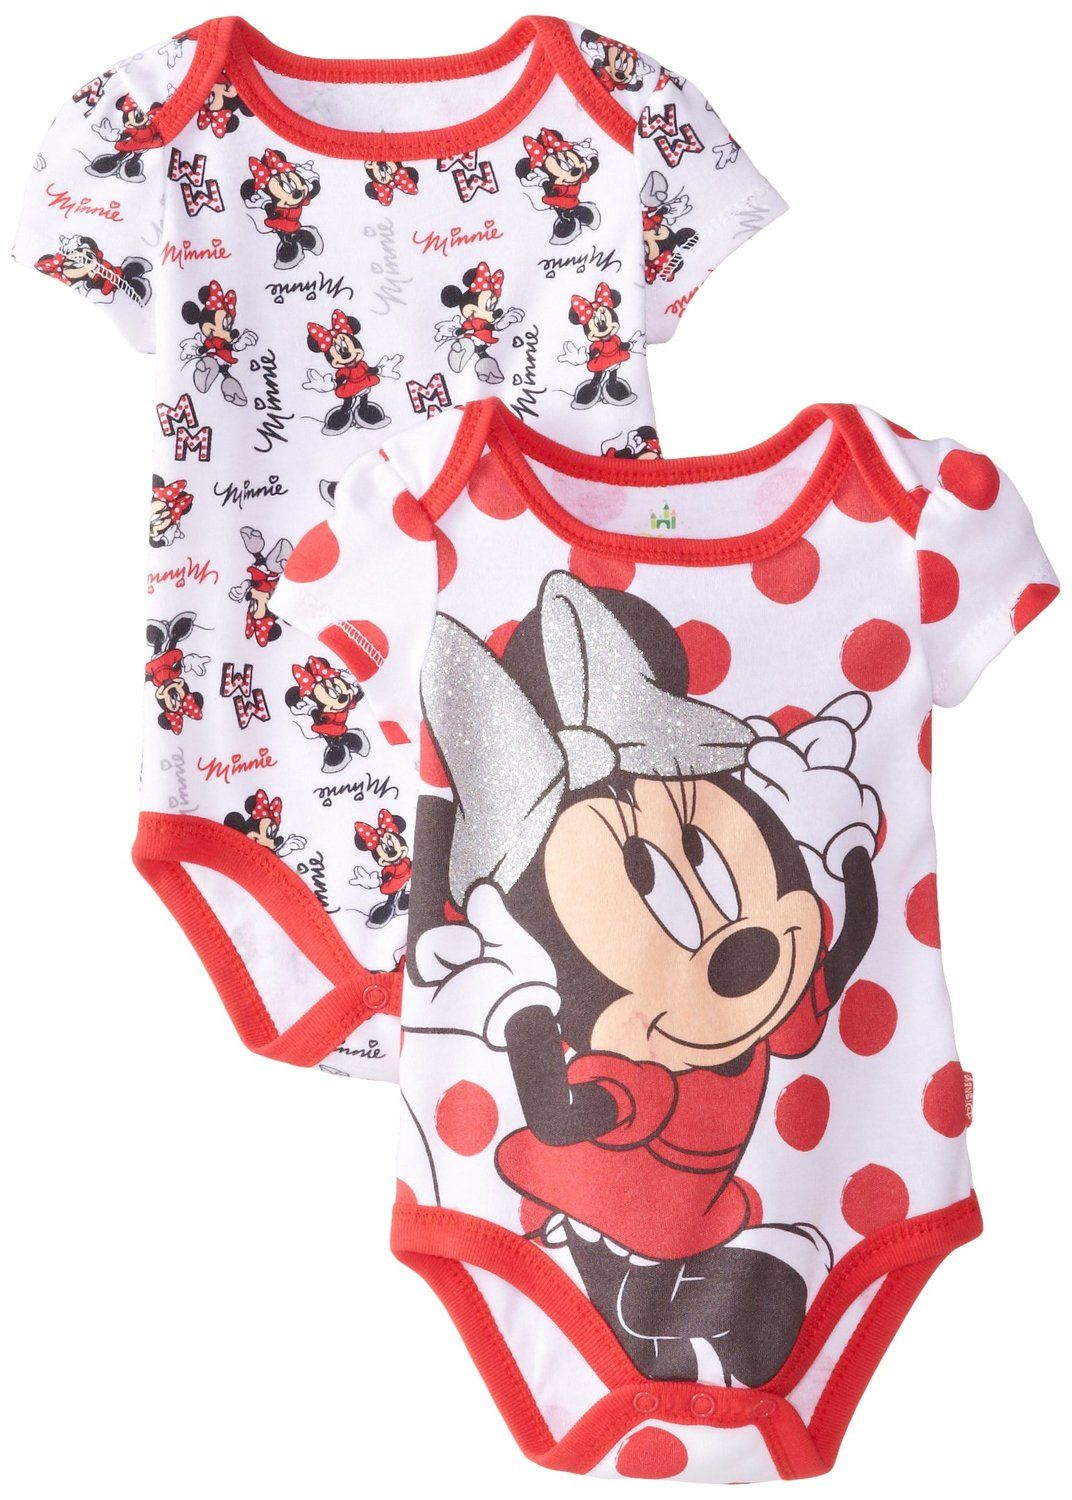 5d9c198a5 Amazon.com: Disney Baby Baby-Girls Newborn Minnie Mouse 2 Pack Bodysuit:  Clothing